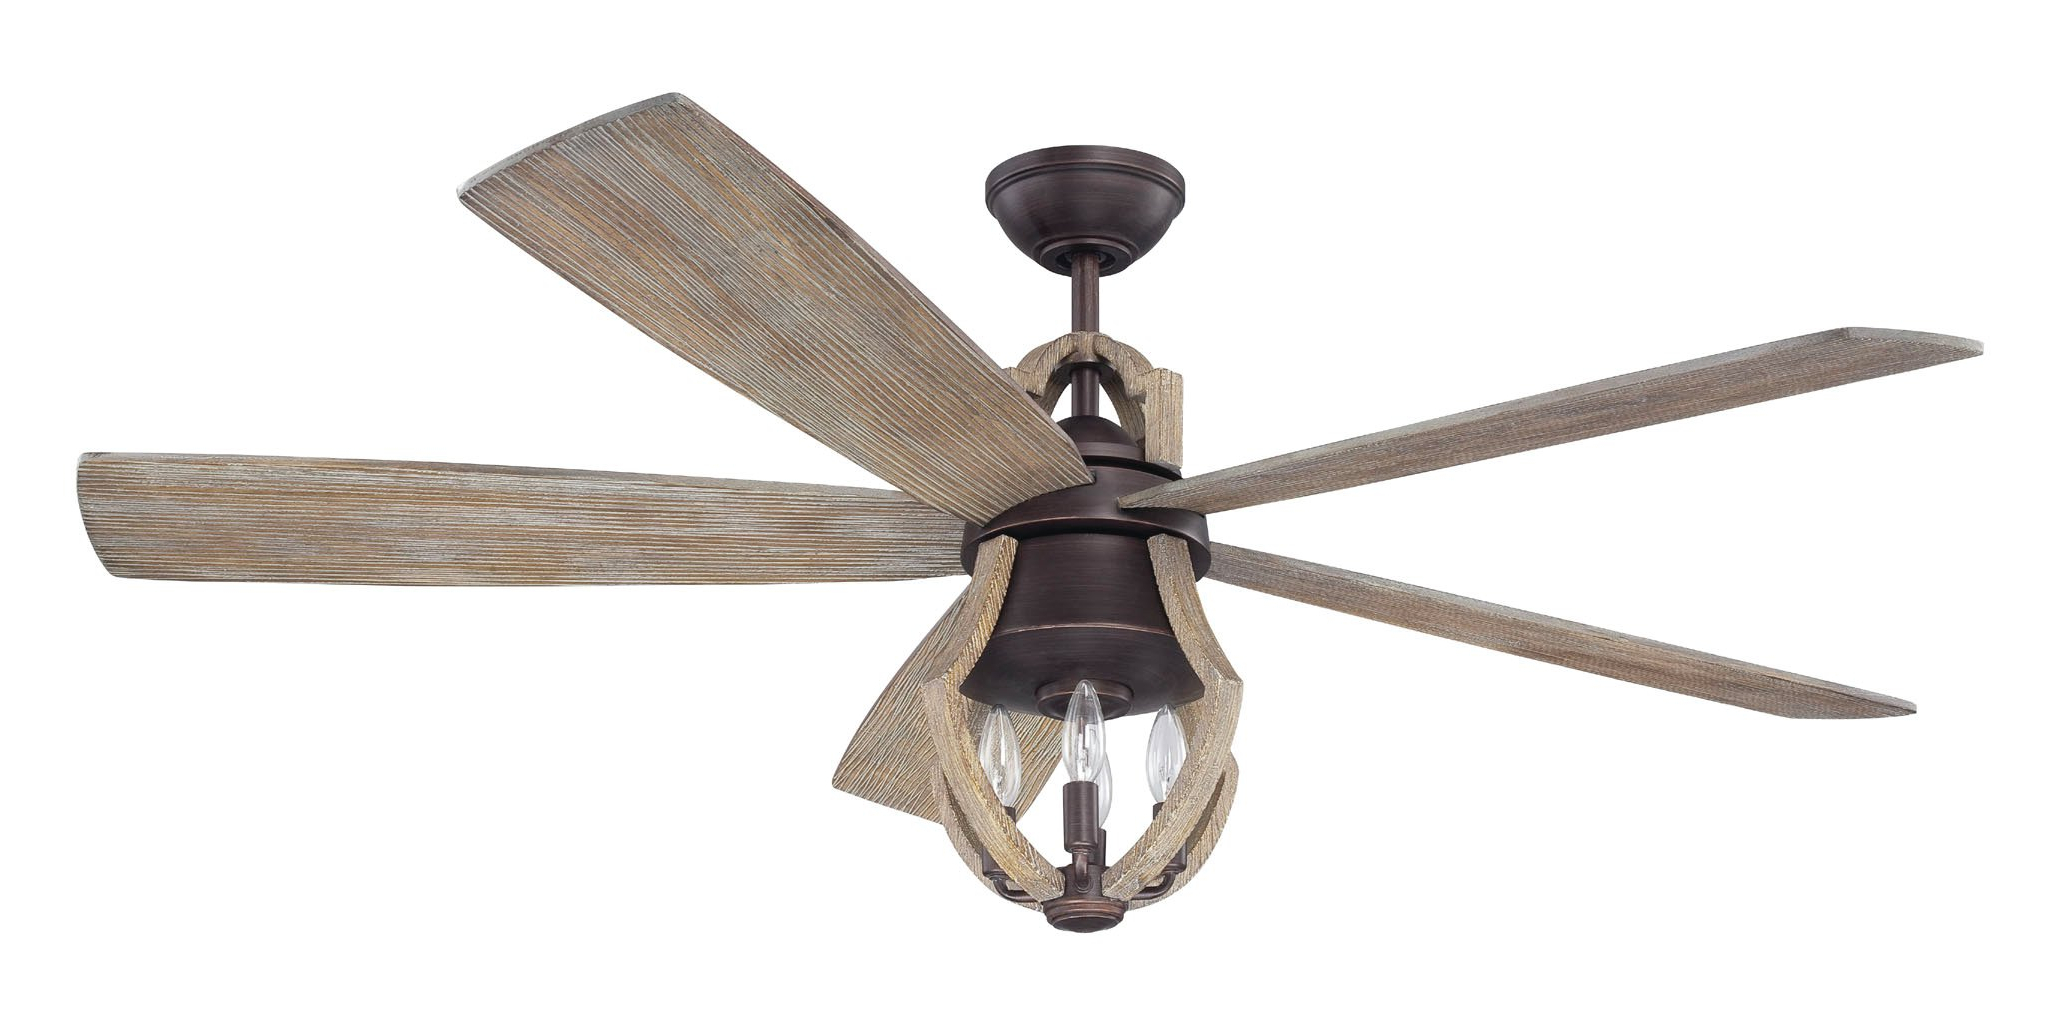 "Wilburton 5 Blade Ceiling Fans With Remote Throughout Famous 56"" Marcoux 5 Blade Ceiling Fan With Remote, Light Kit (View 8 of 20)"